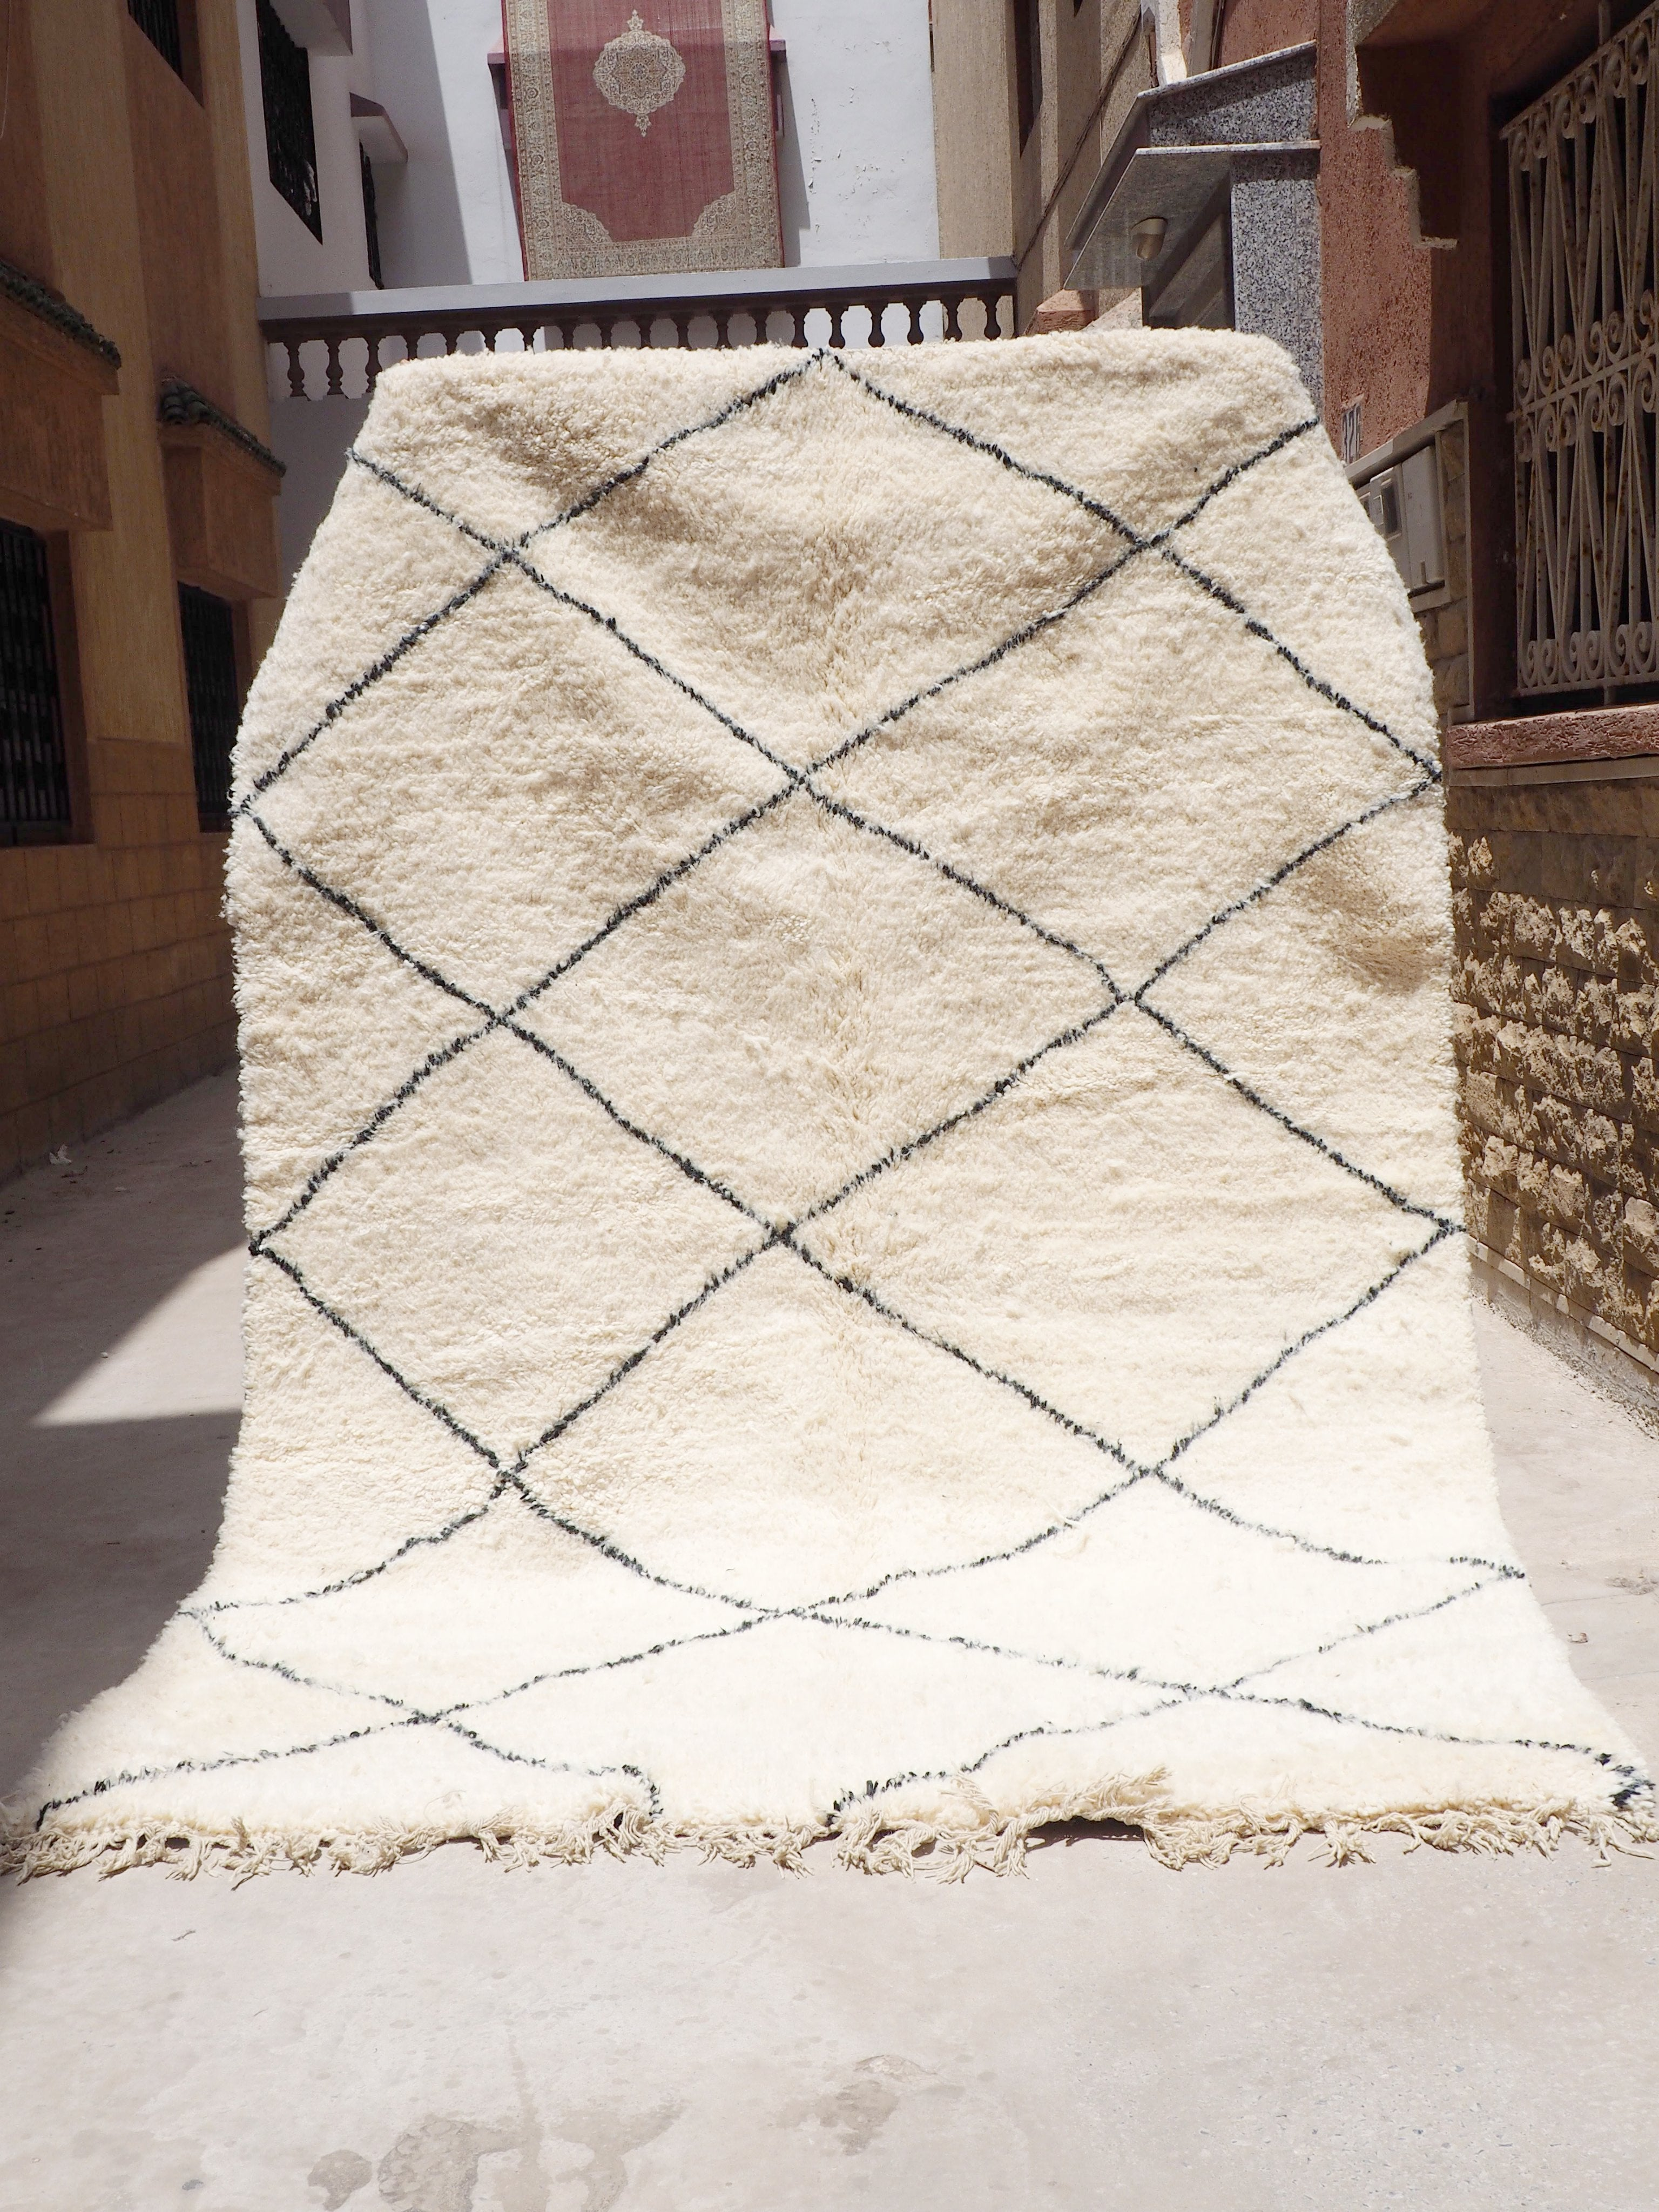 Beni Ourain Carpet - 330x200cm - Diamonds - MAKEEN- Natural Wool - 1423 - Carpets - THE PEOPLE OF SAND